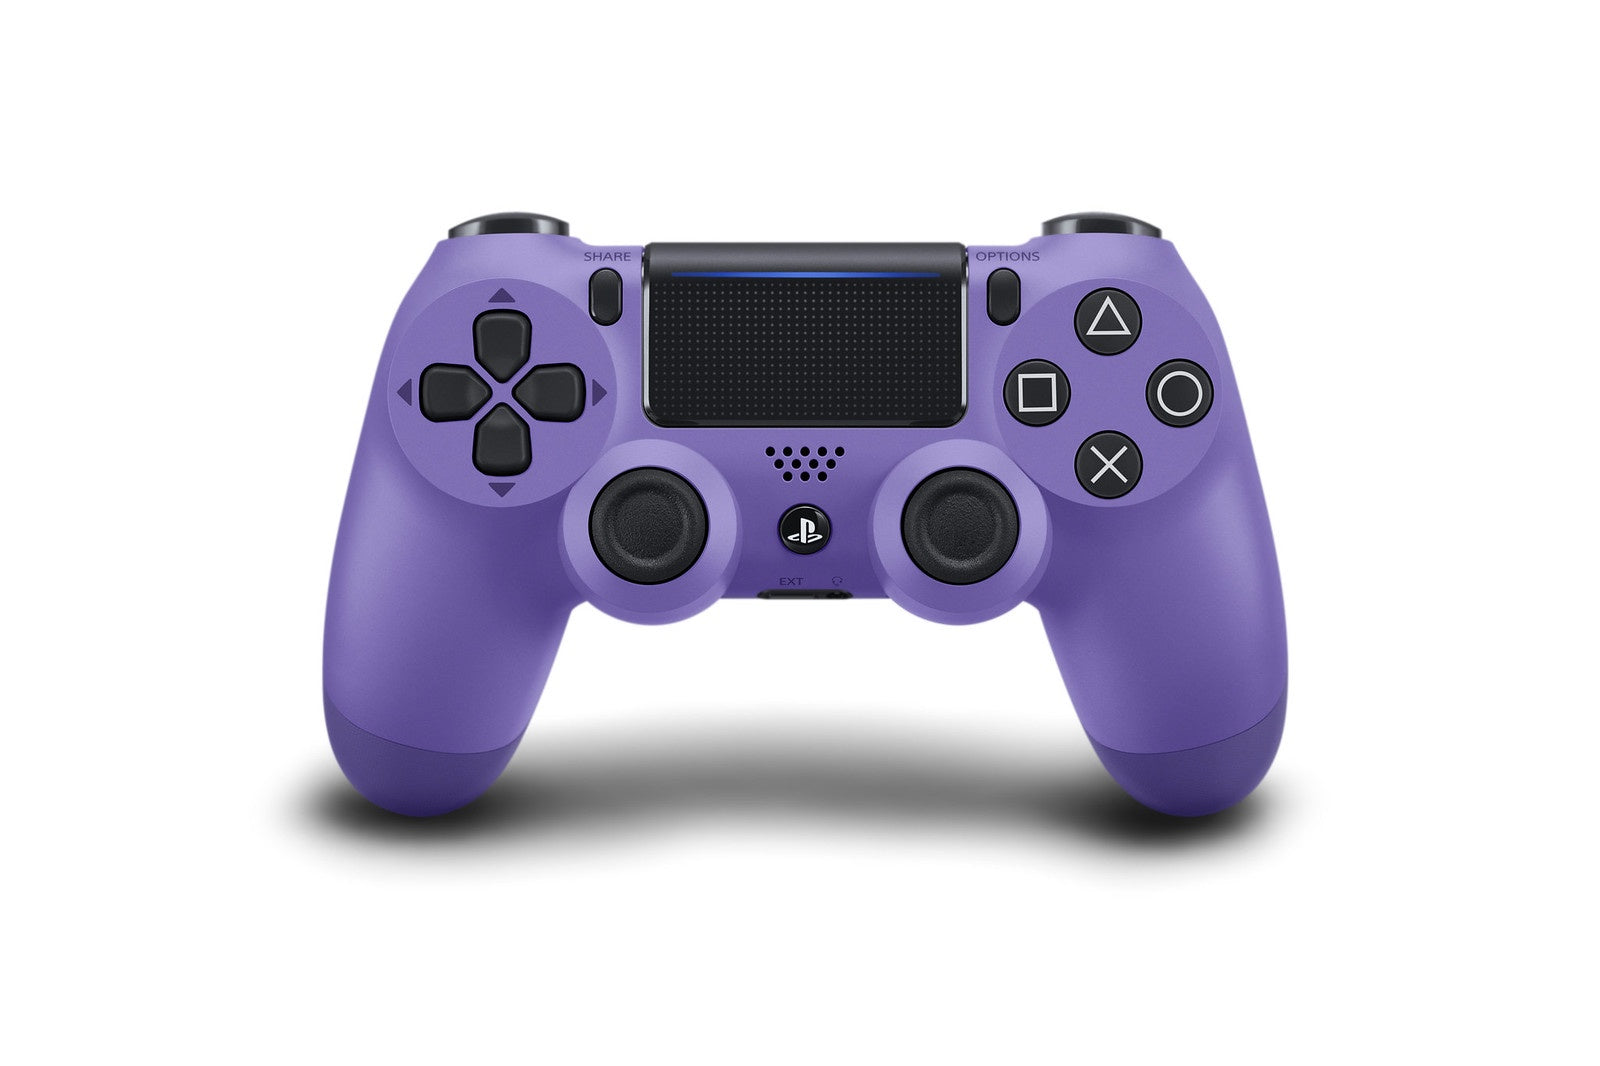 Buy Electric Purple DualShock 4 PlayStation 4 Controller Wireless Controller PS4 at A & C Games Canada